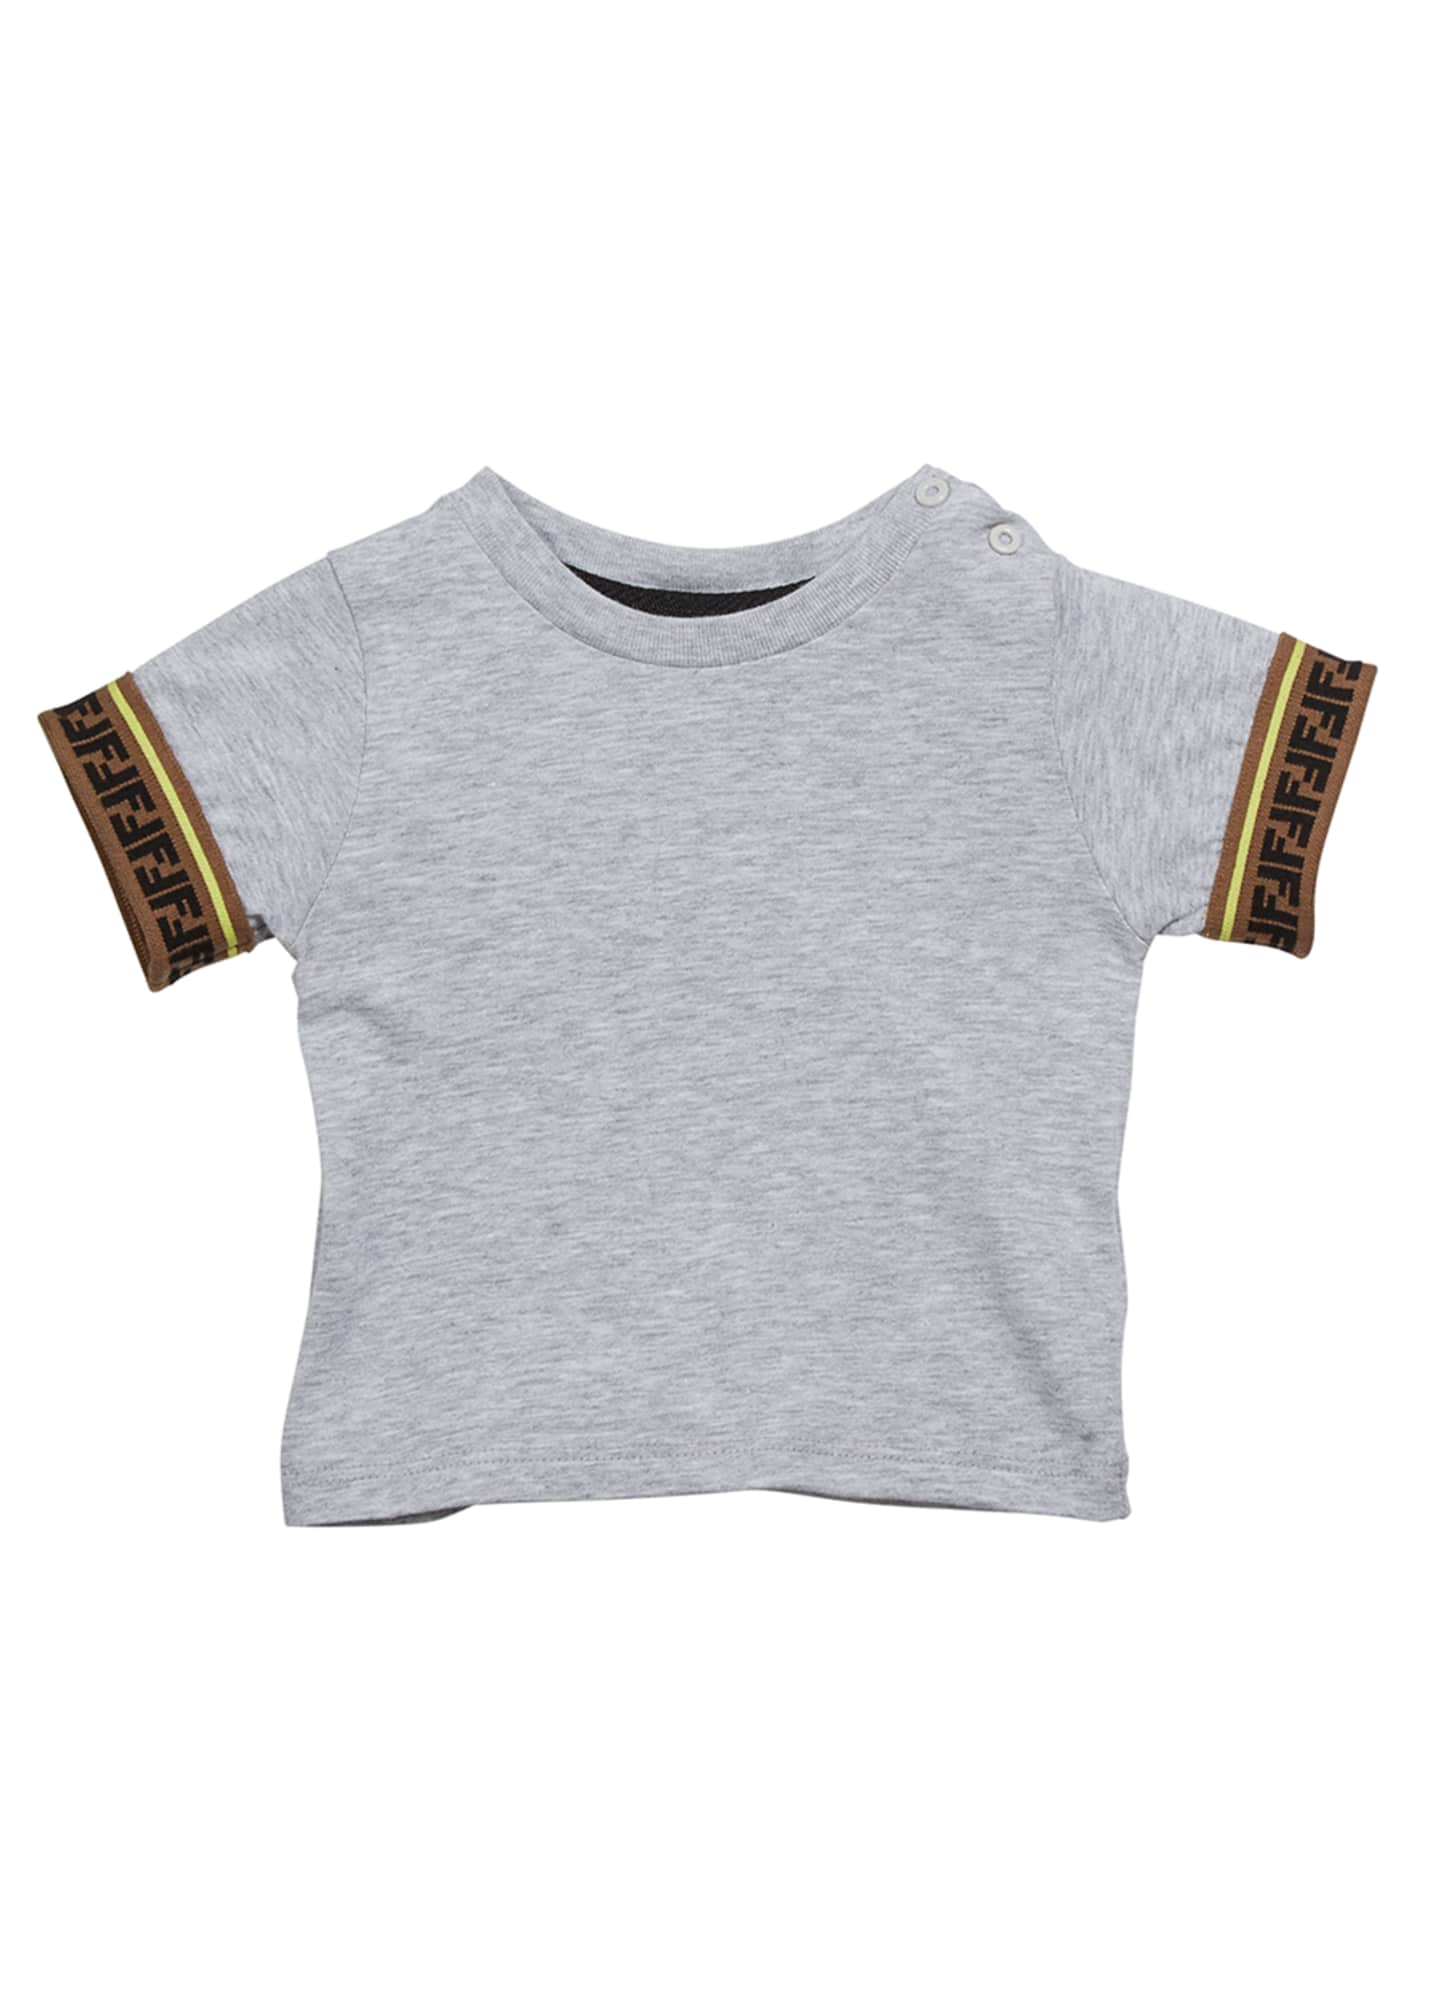 Fendi Boy's Short-Sleeve T-Shirt w/ FF Taping, Size